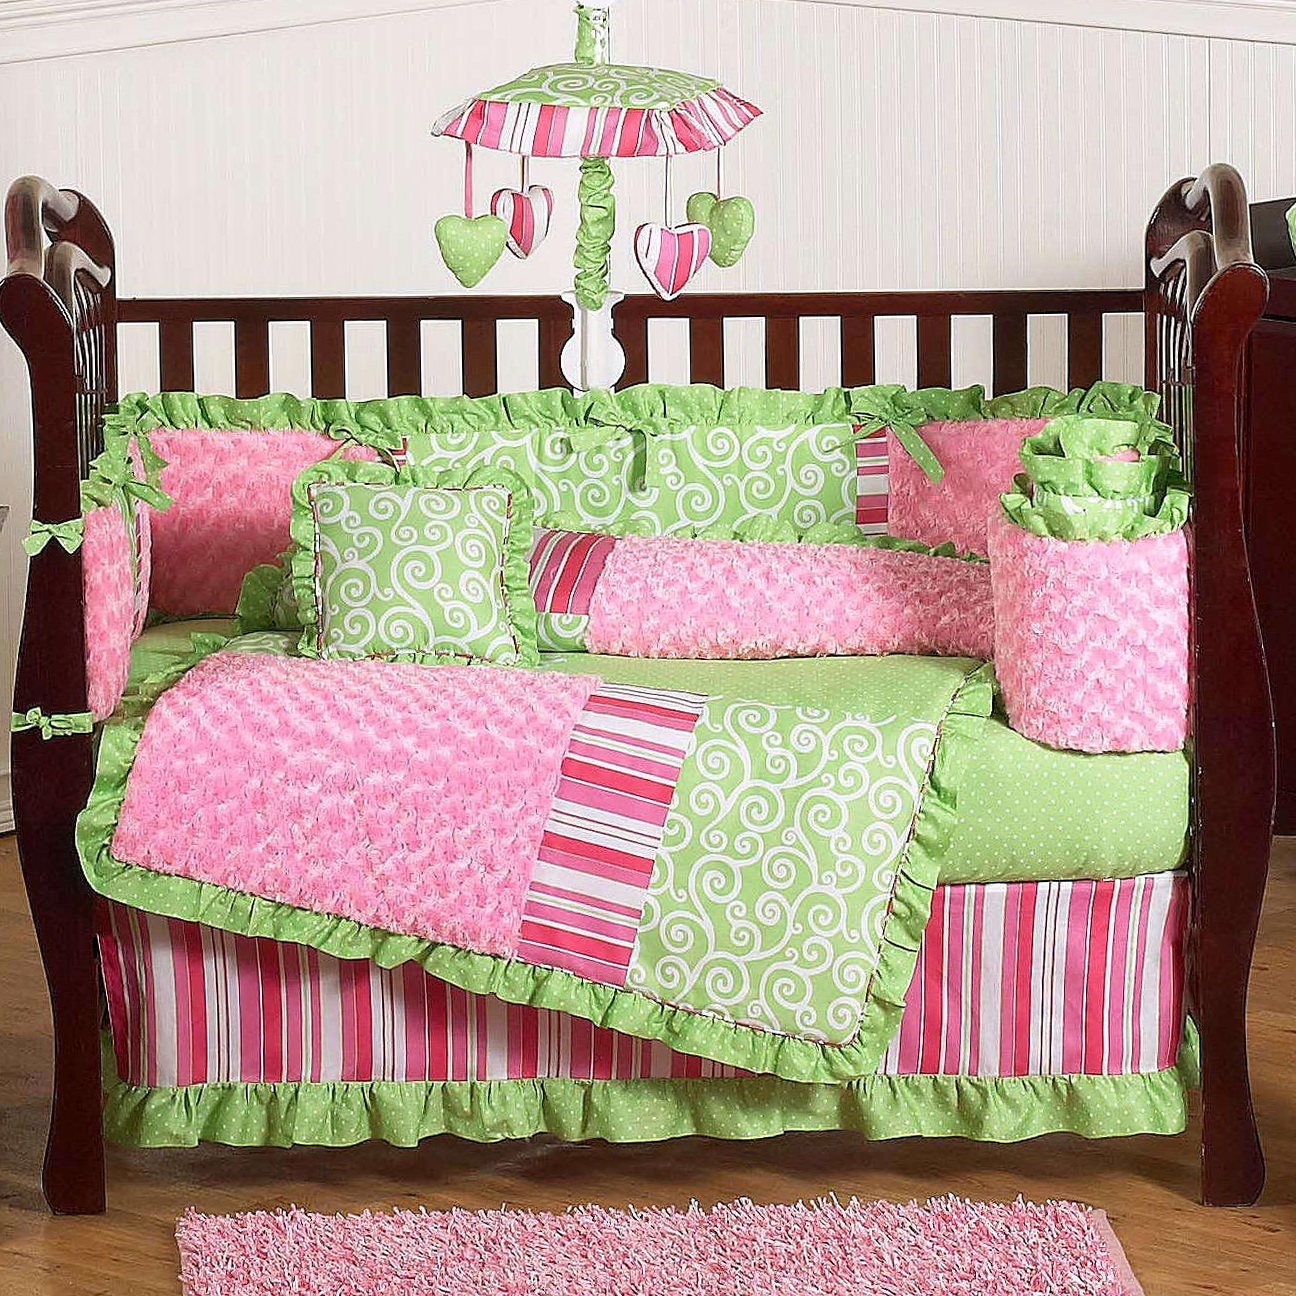 Crib Bed Sets For Girls